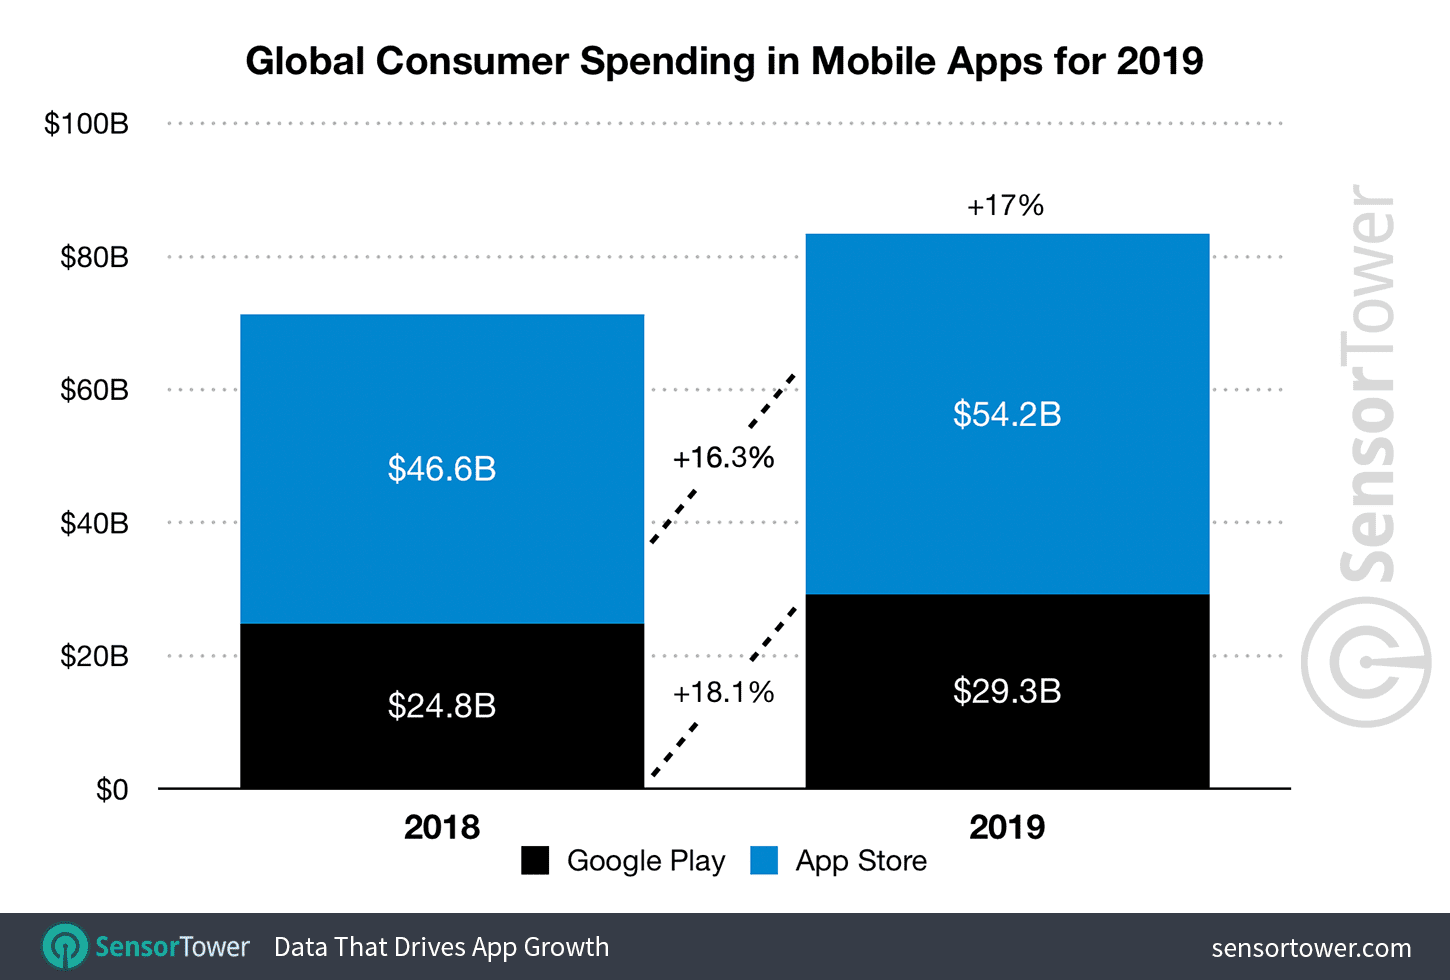 Global consumer spending in mobile apps for 2019